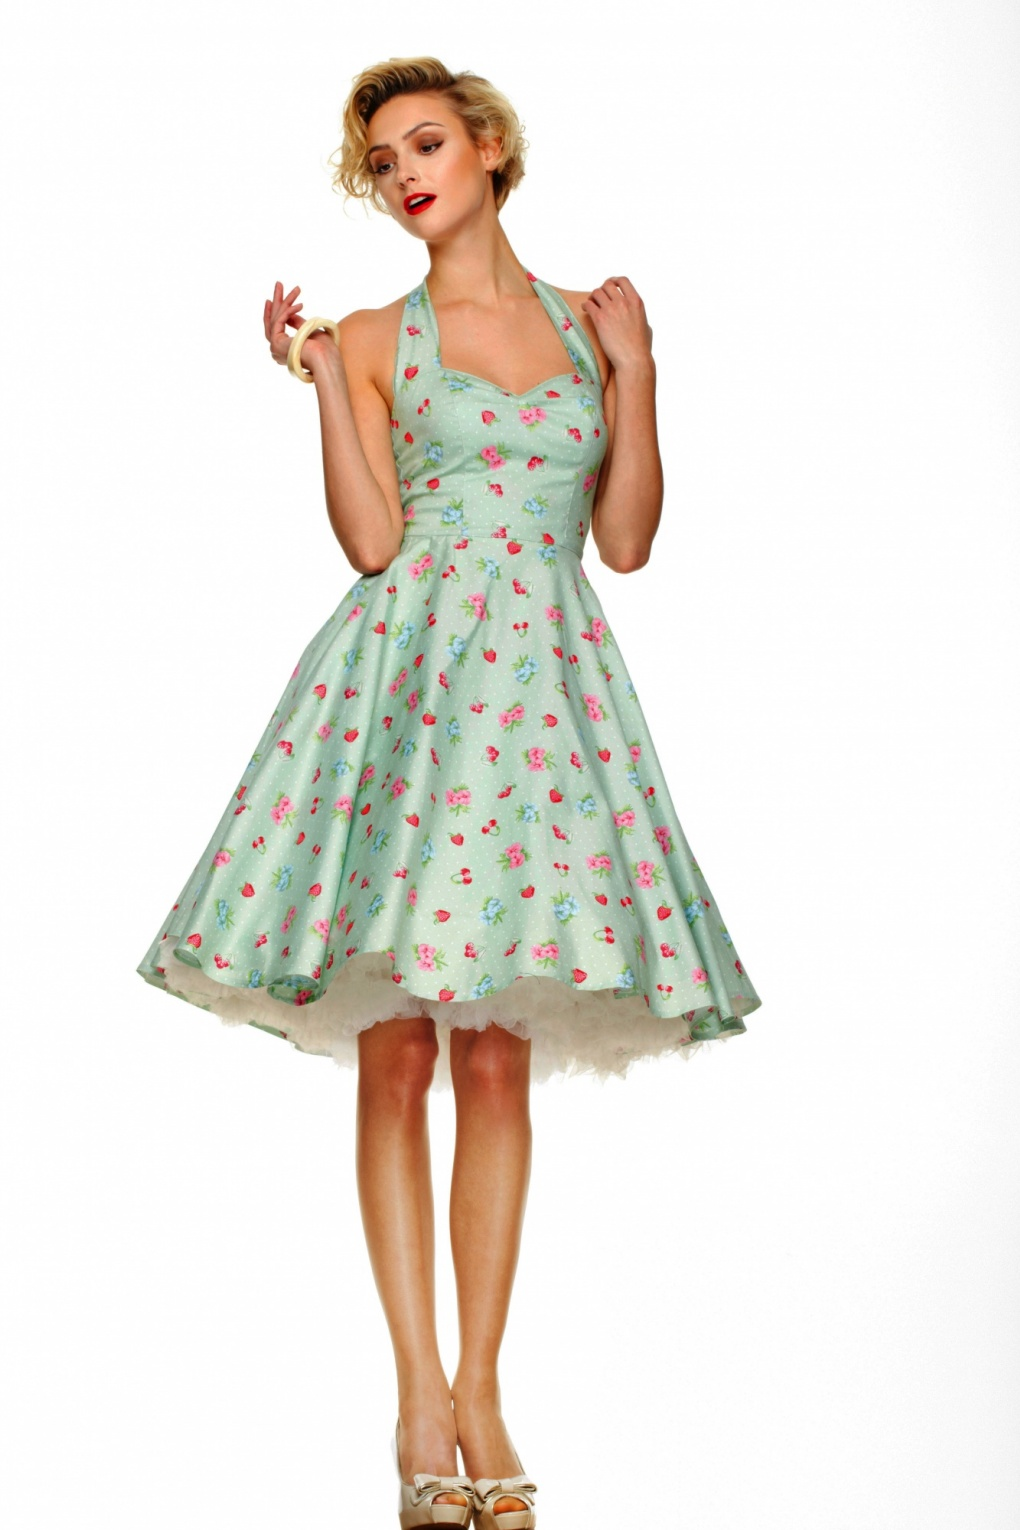 Opinion, vintage 50 s dresses are not